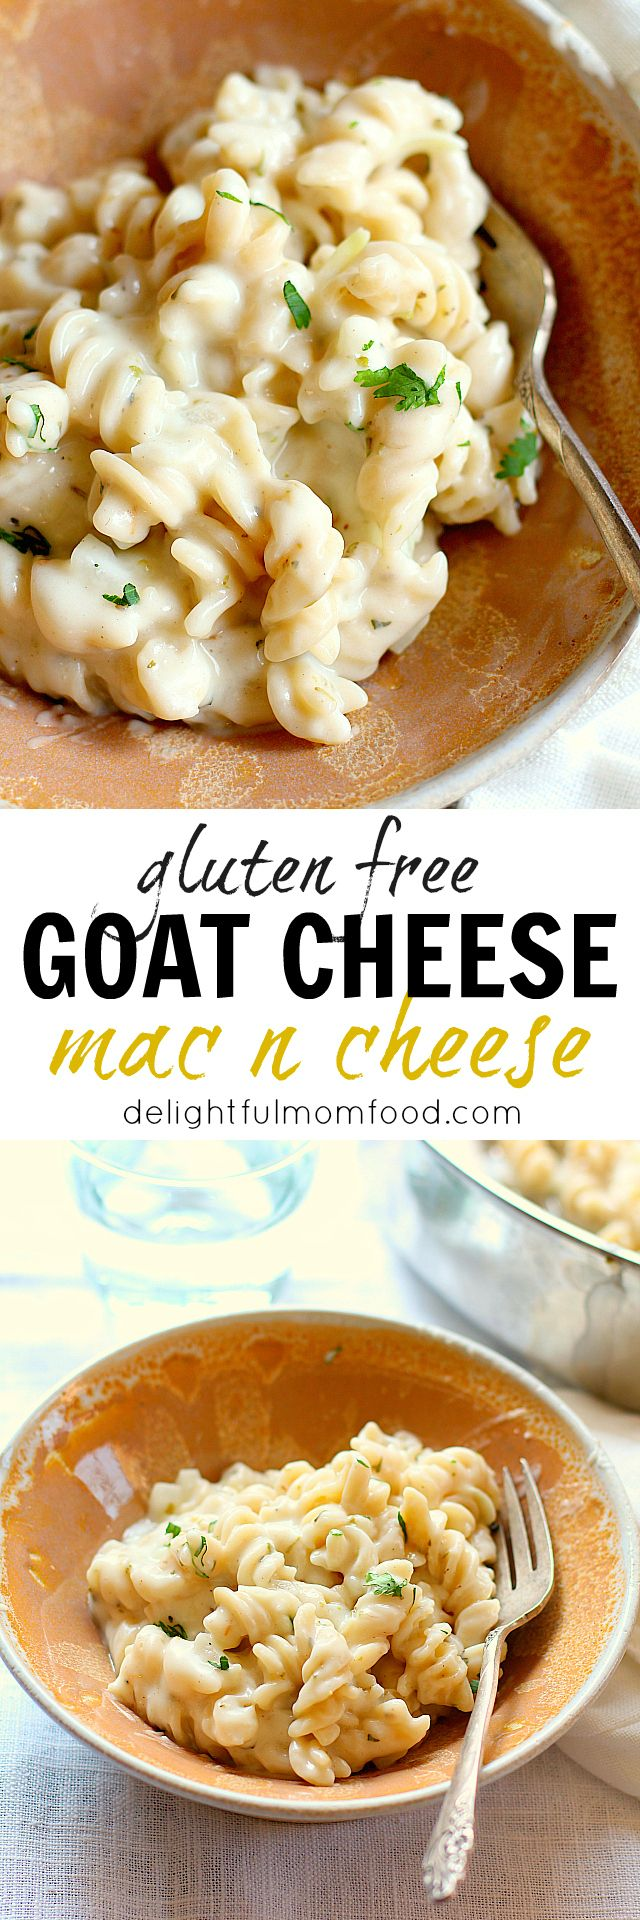 Dinner in less than 20 minutes! Creamy, gooey skillet mac and cheese turned up a notch with tasty goat cheese. Softer on the belly and bold comfort food all around!